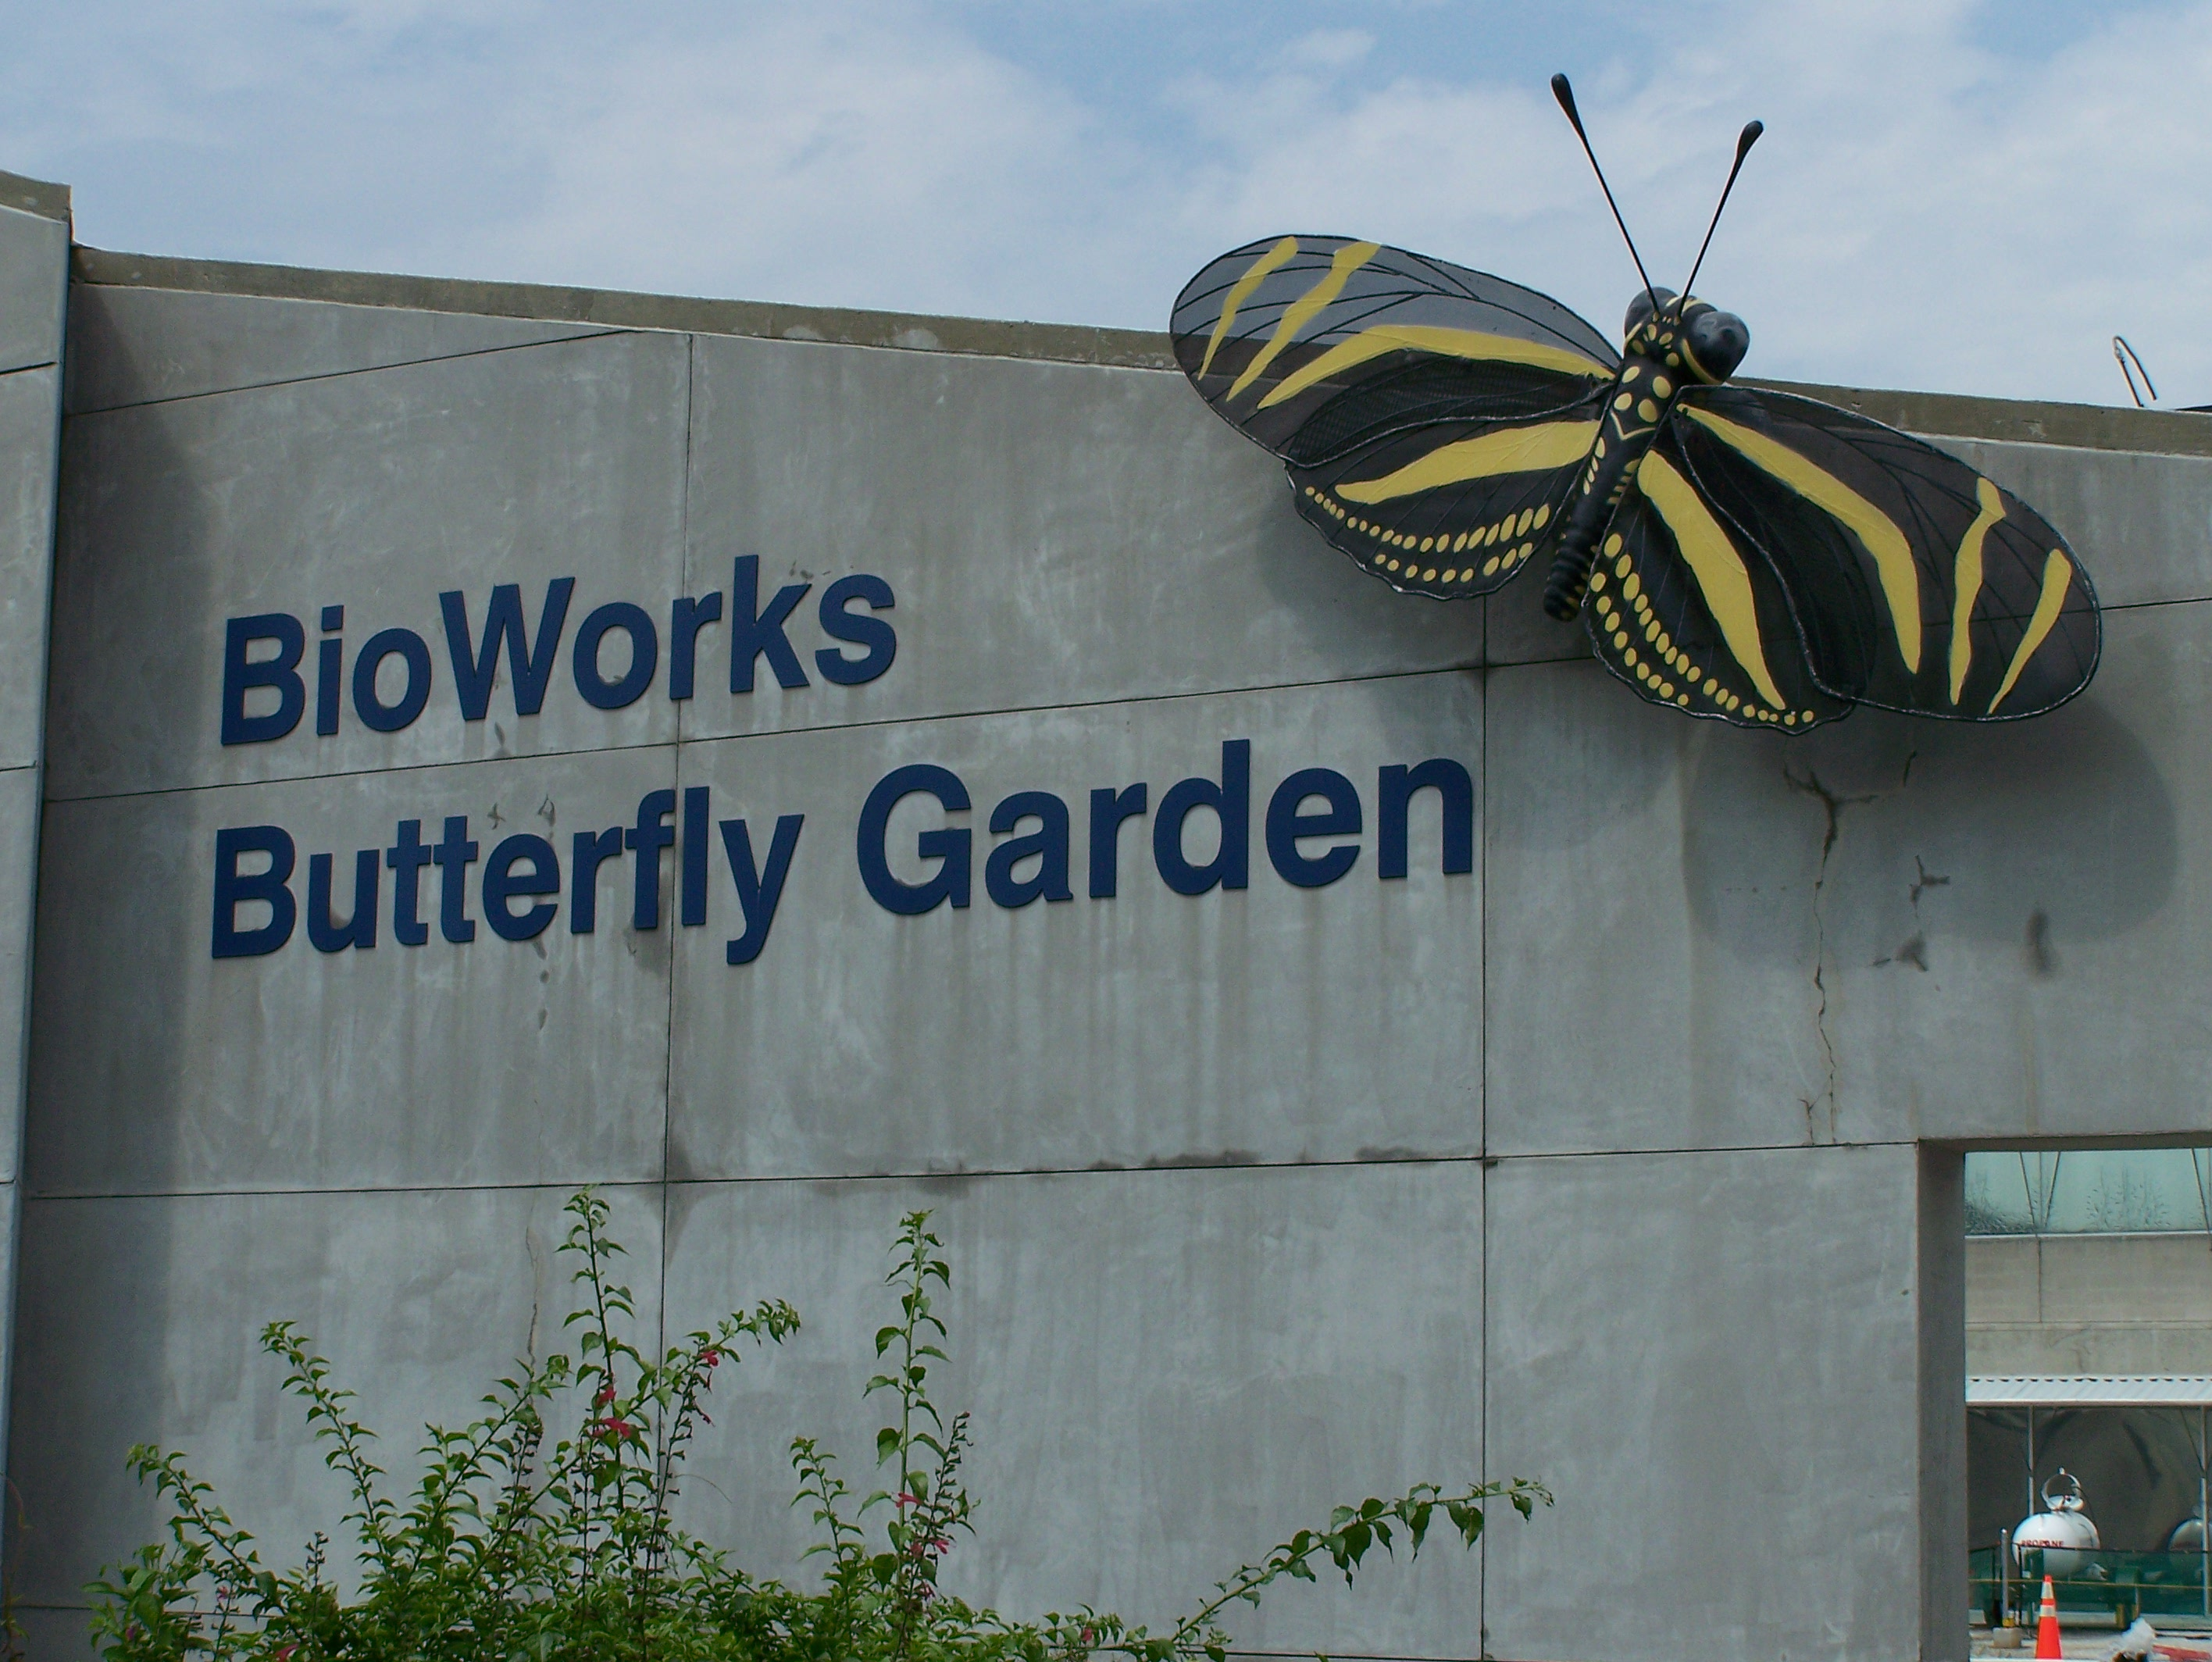 Exceptionnel File:The Bio Works Butterfly Garden